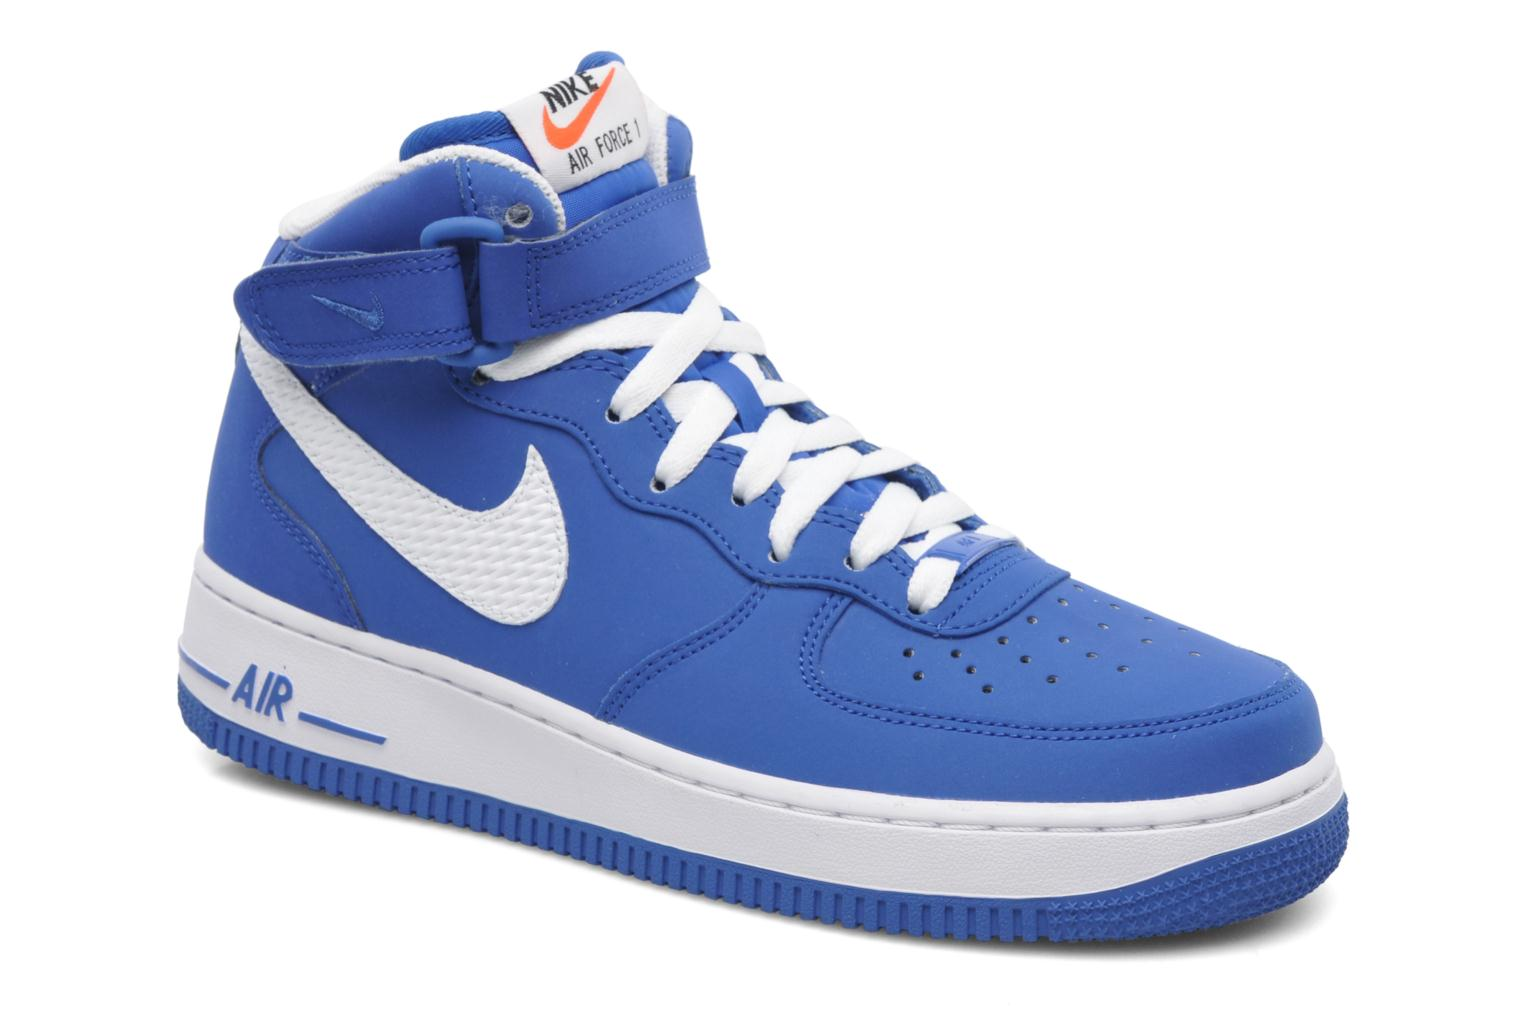 nike air force 1 mid trainers in blue at 199011. Black Bedroom Furniture Sets. Home Design Ideas